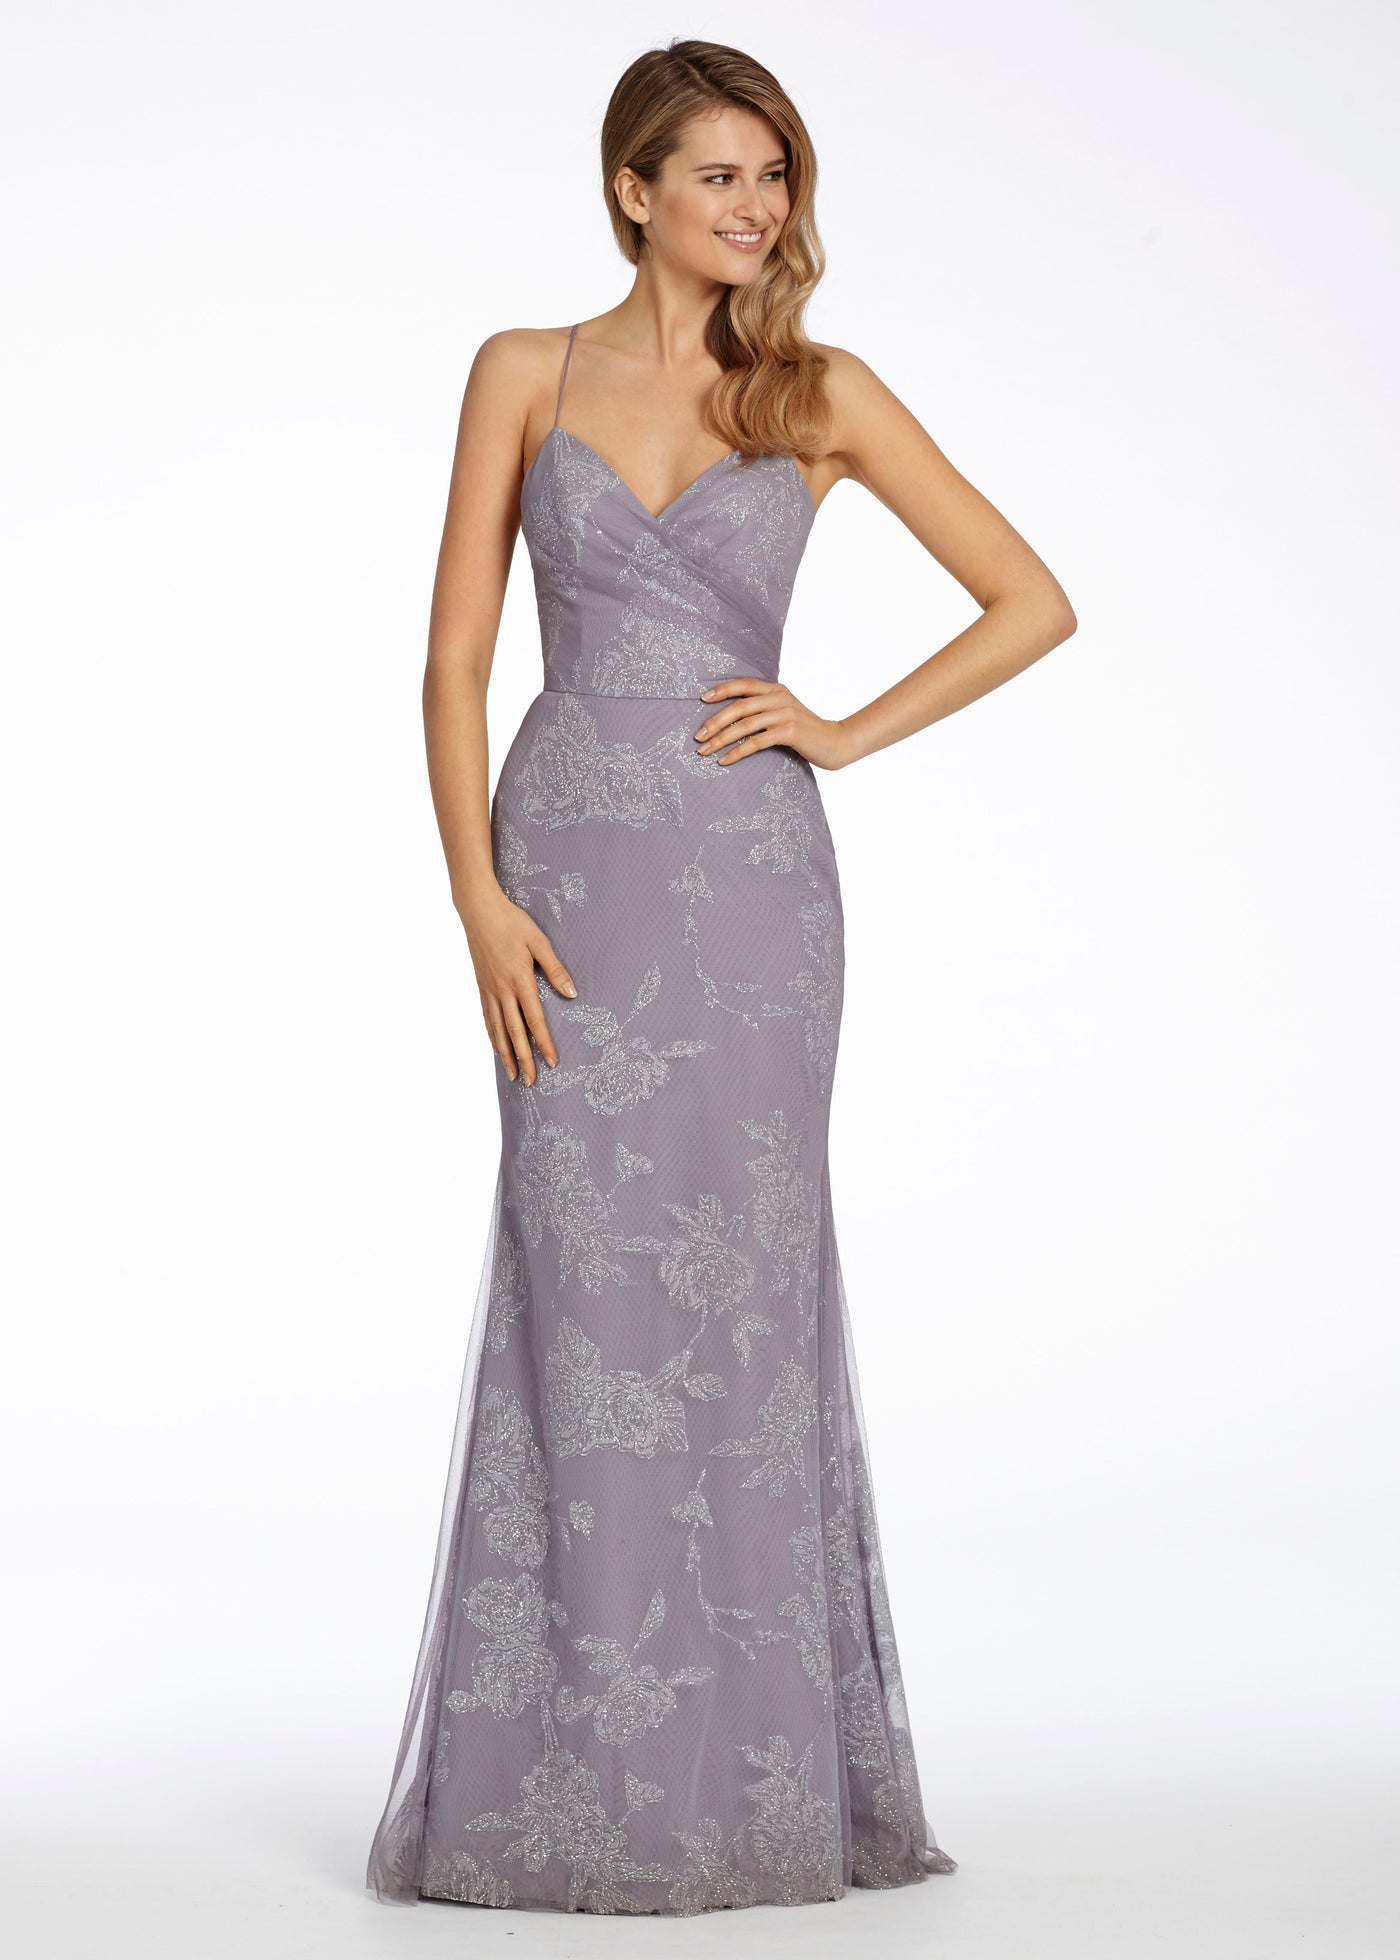 Spencer, Bridesmaid Dress, Hayley Paige Occasions - Eternal Bridal